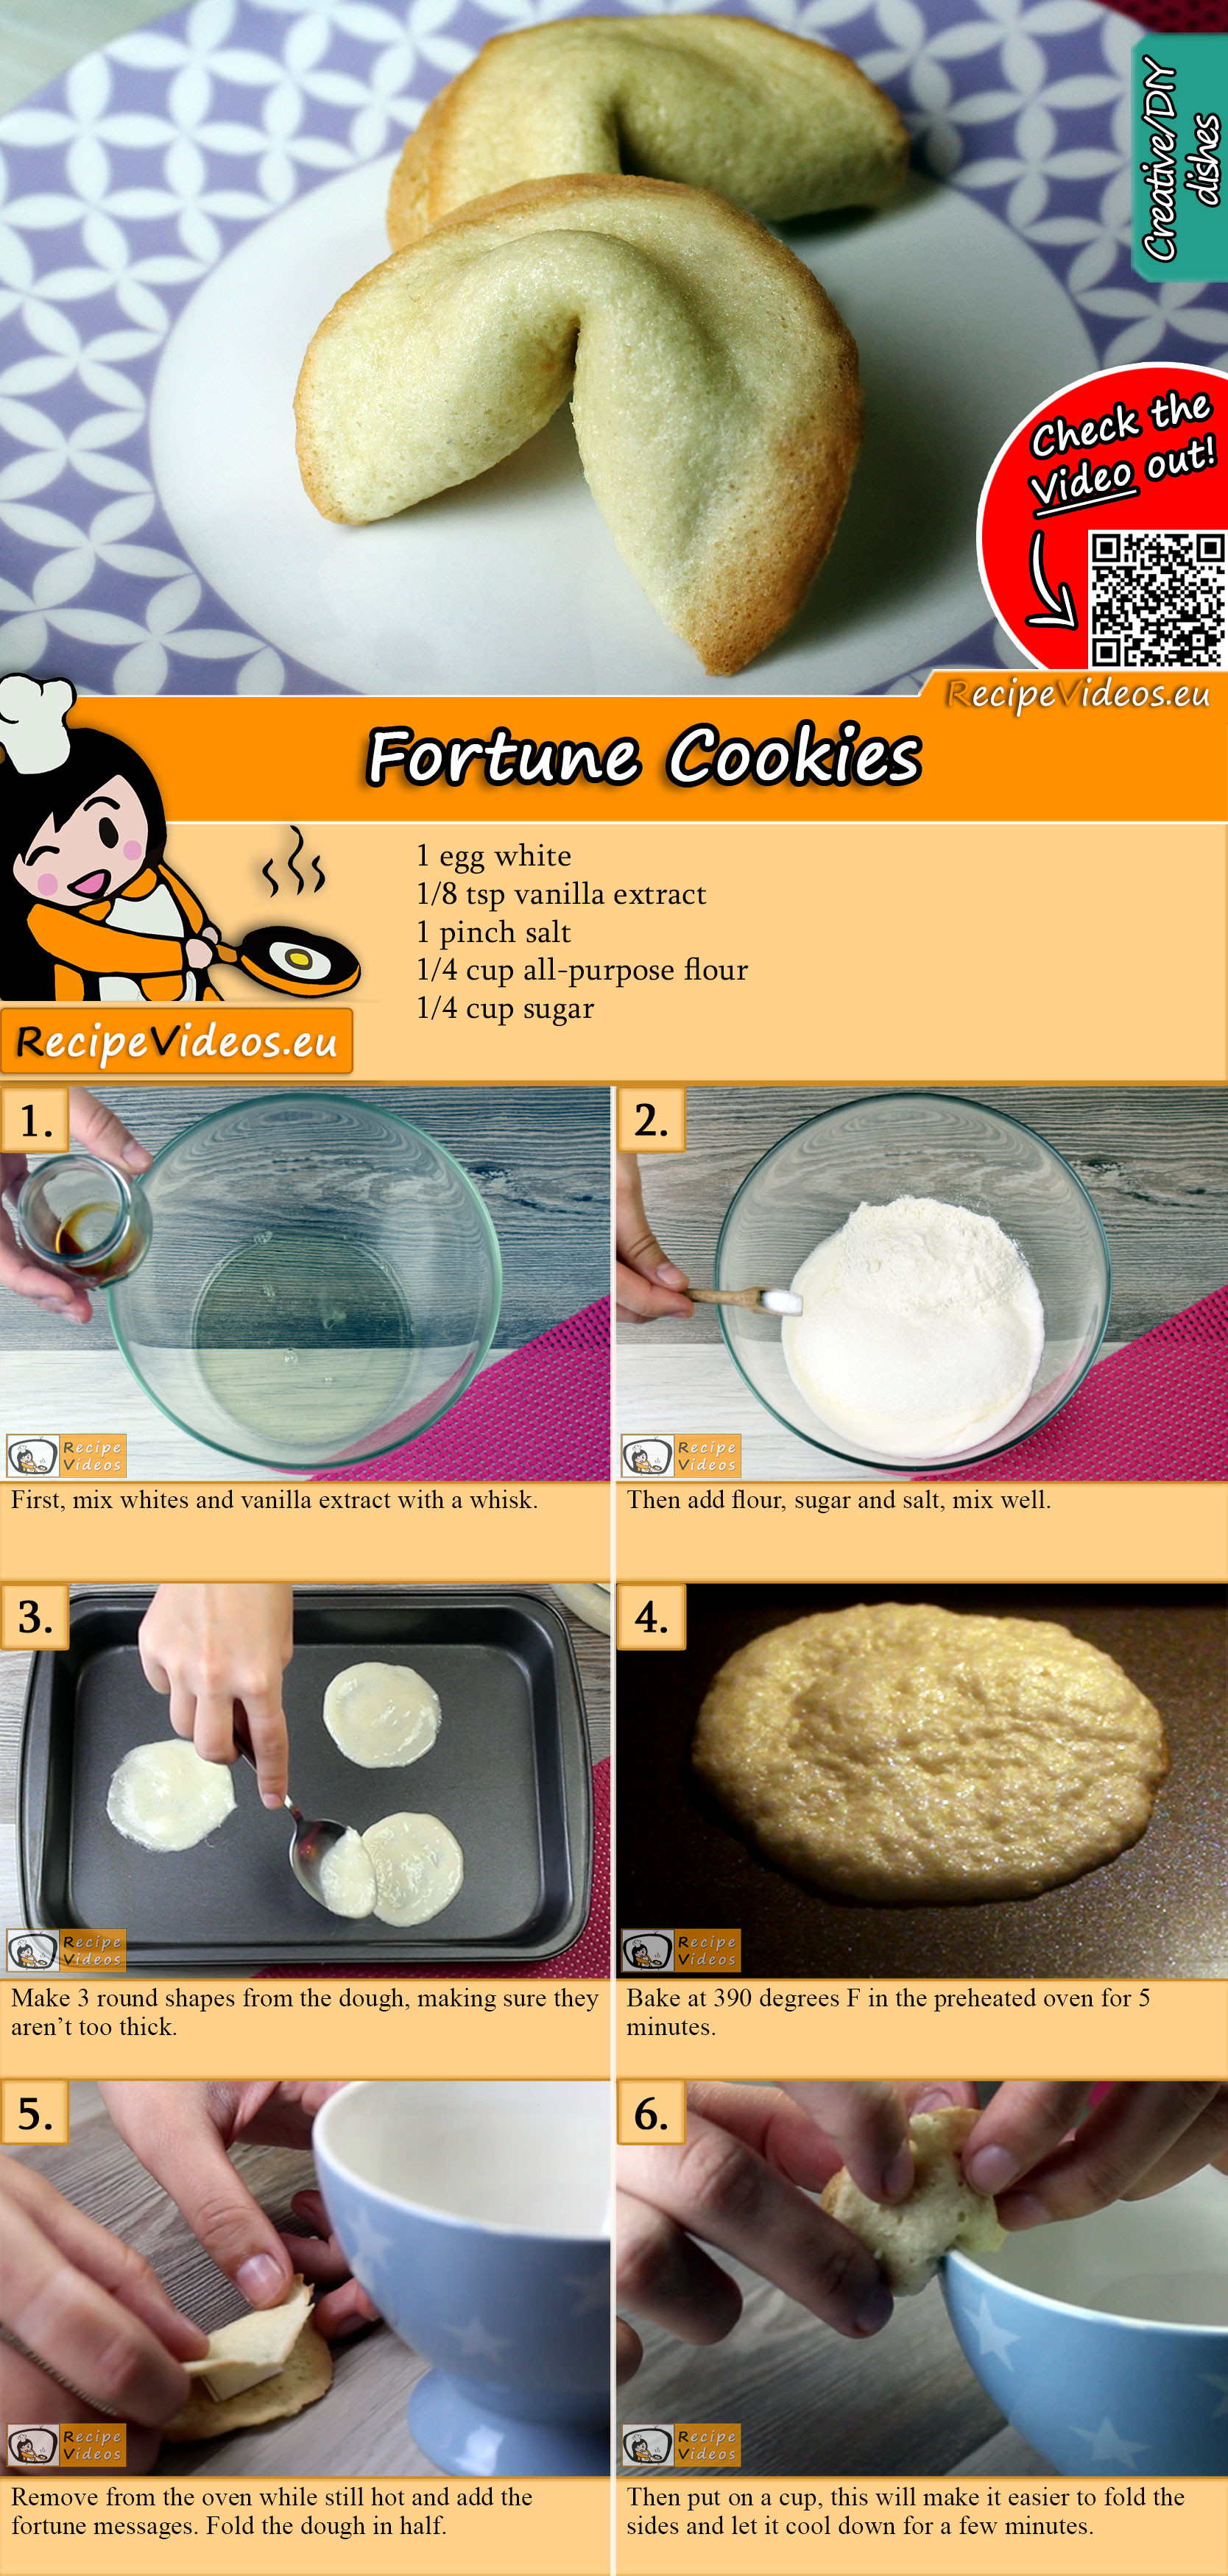 Fortune Cookies recipe with video